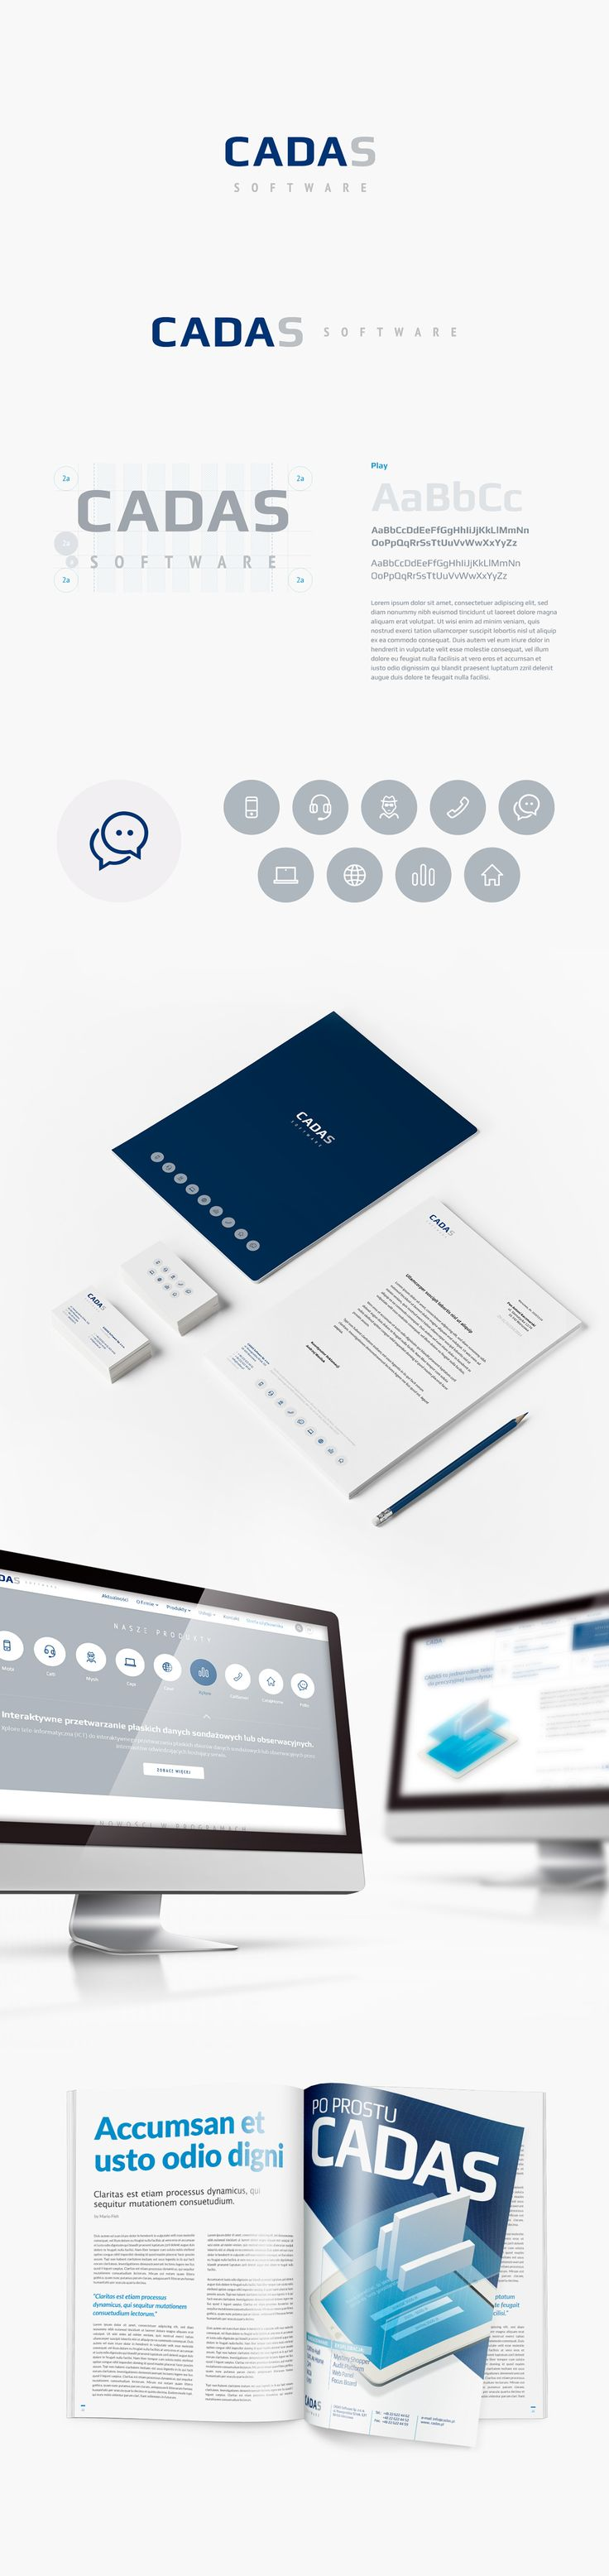 corporate identity for Cadas Software (Poland)